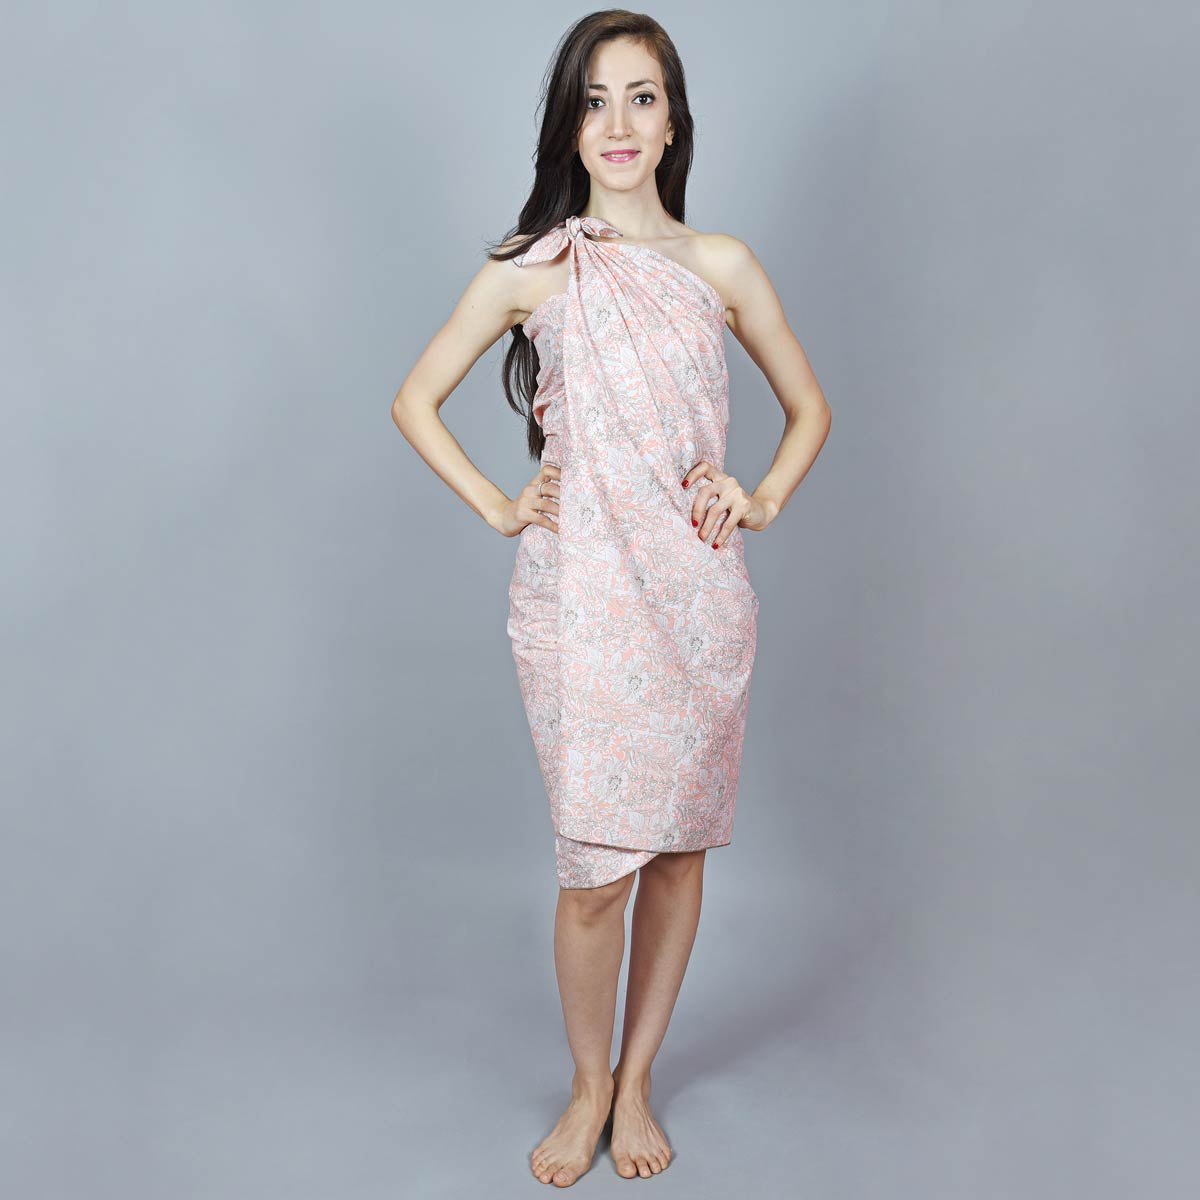 AT-05543_W12-2--_Pareo-femme-coton-corail